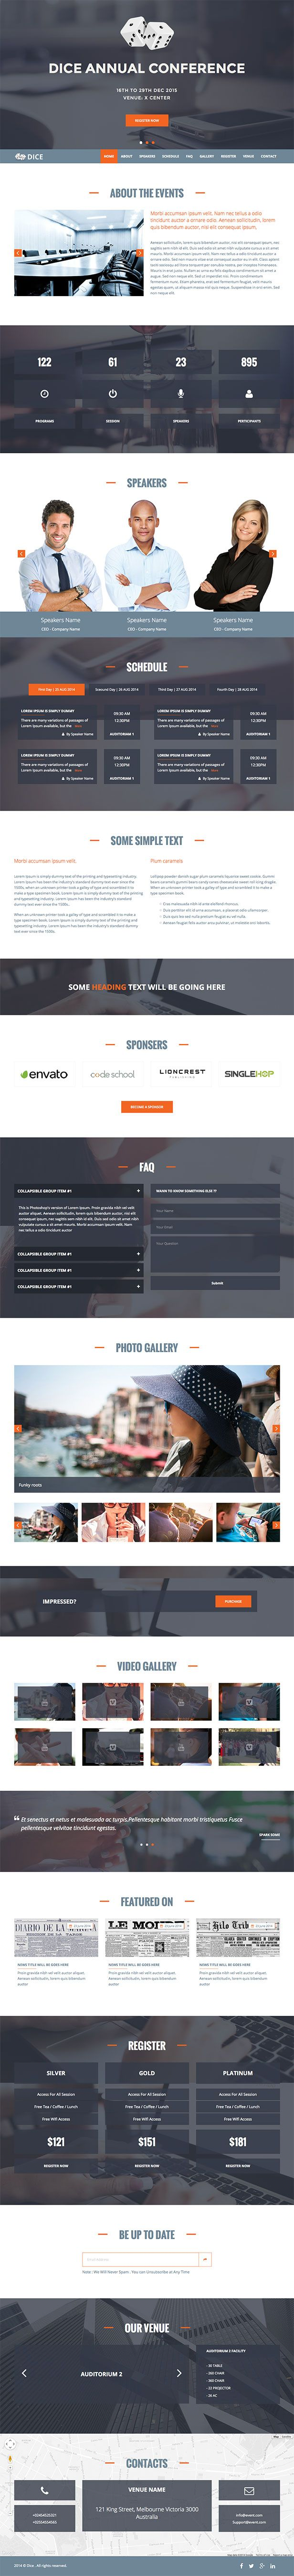 Dice : One Page Event and Conference HTML Template